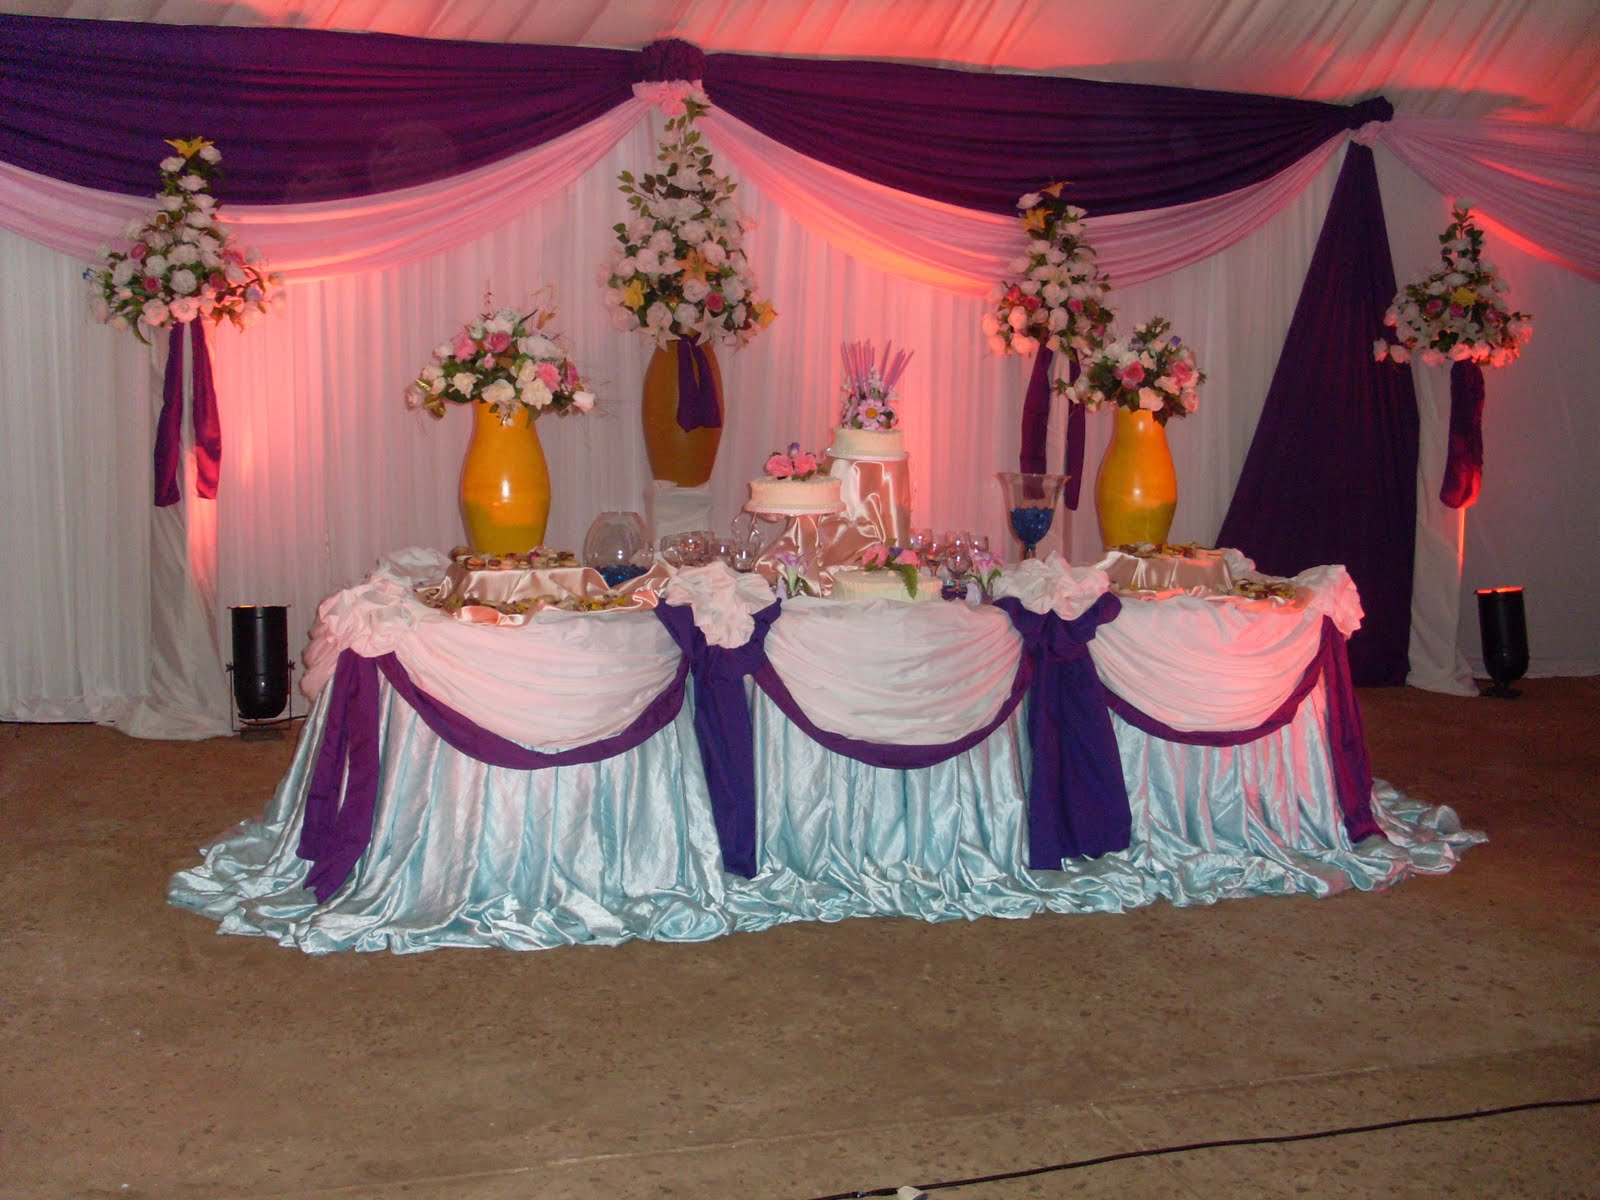 Decoraciones eventos fiestas for Decoracion y ambientacion de eventos